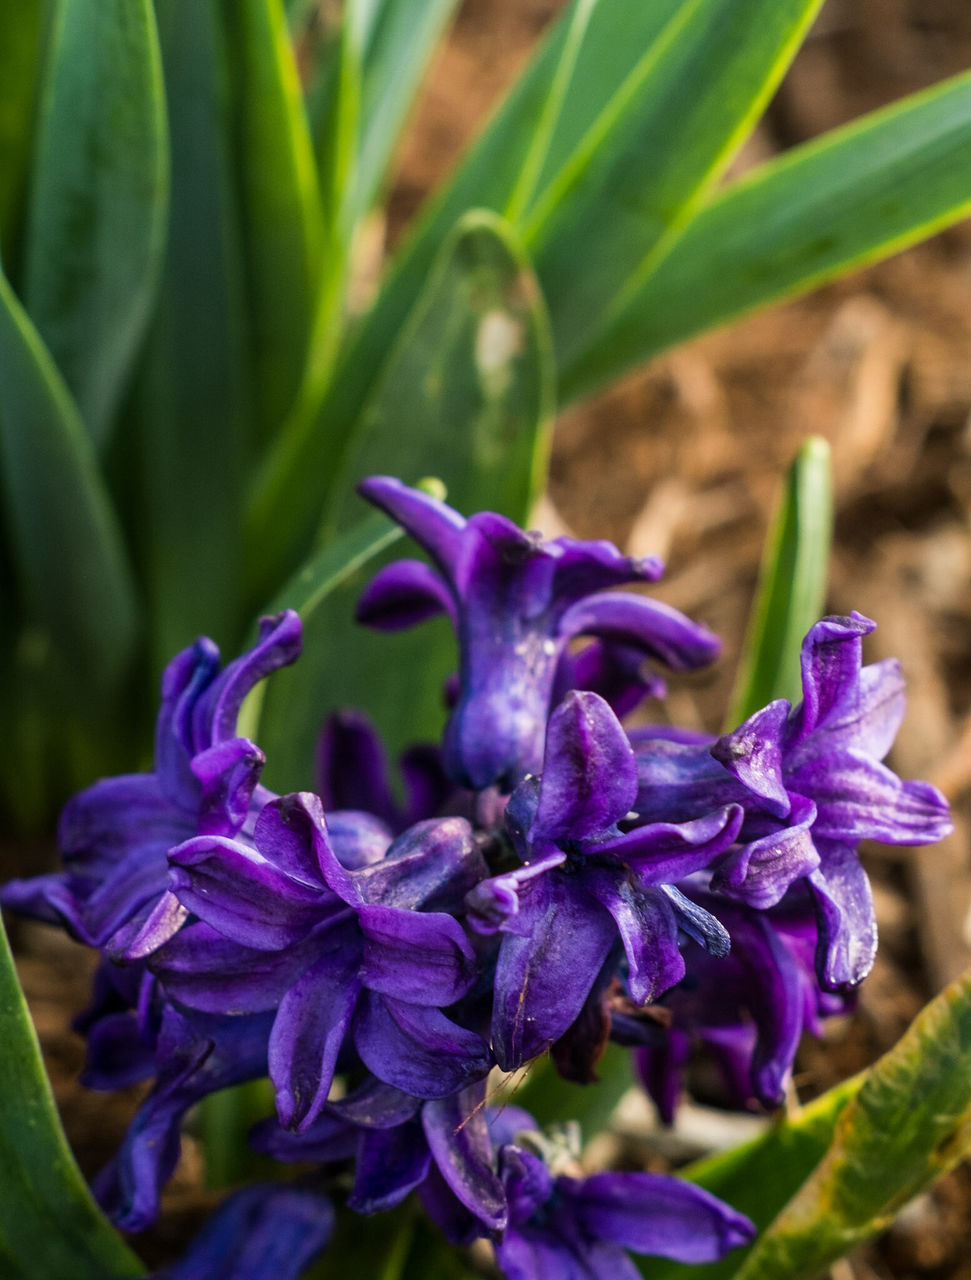 flower, growth, nature, beauty in nature, petal, plant, purple, fragility, freshness, flower head, outdoors, no people, close-up, day, green color, leaf, blooming, iris - plant